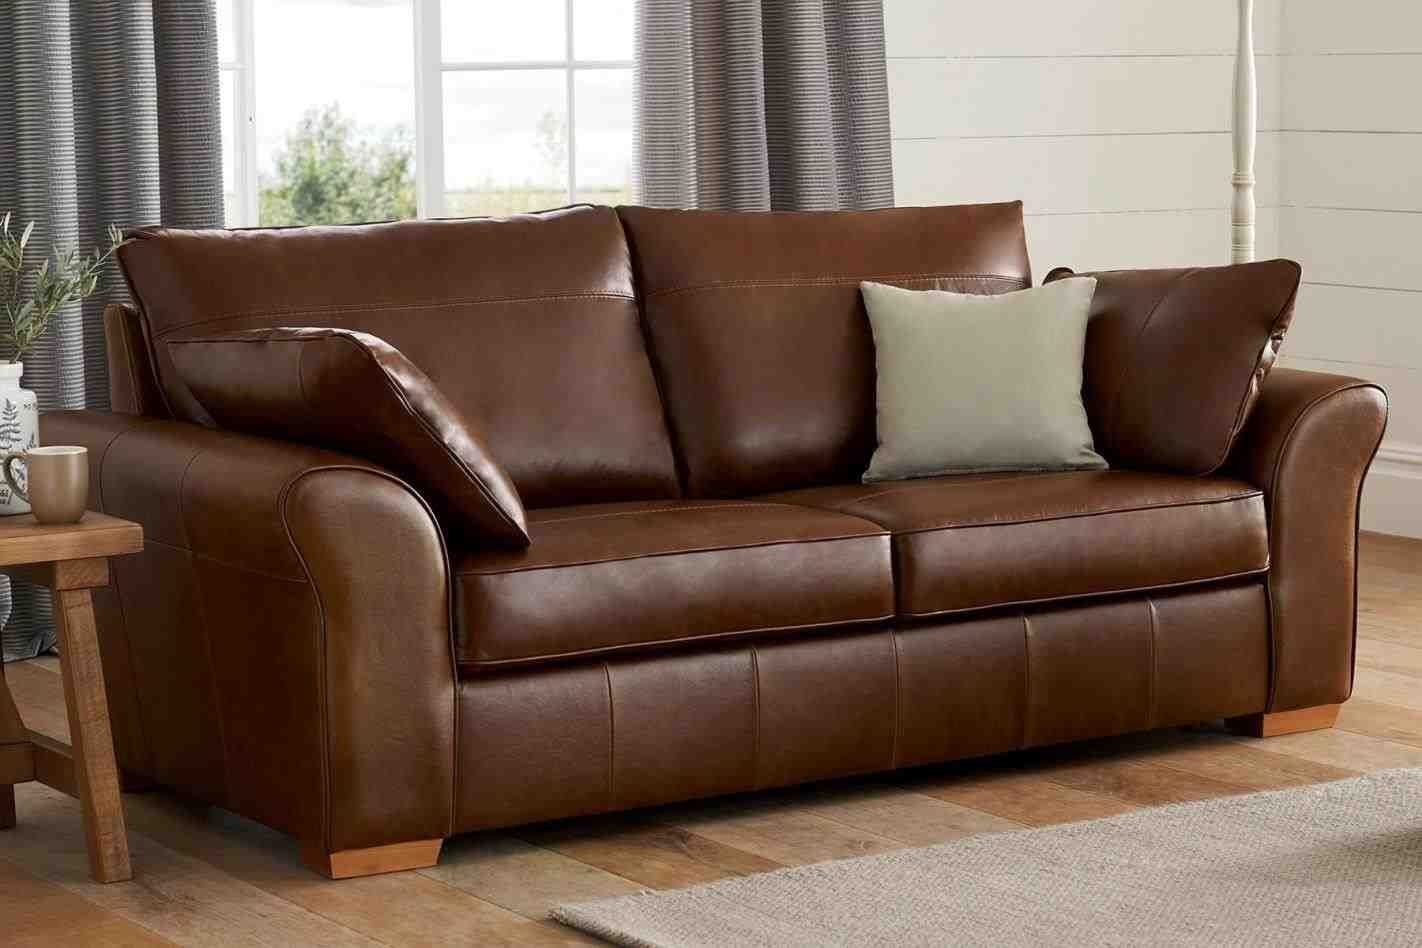 Cheap Leather Sofas Online Uk - l leather sofaed buy online couches ...